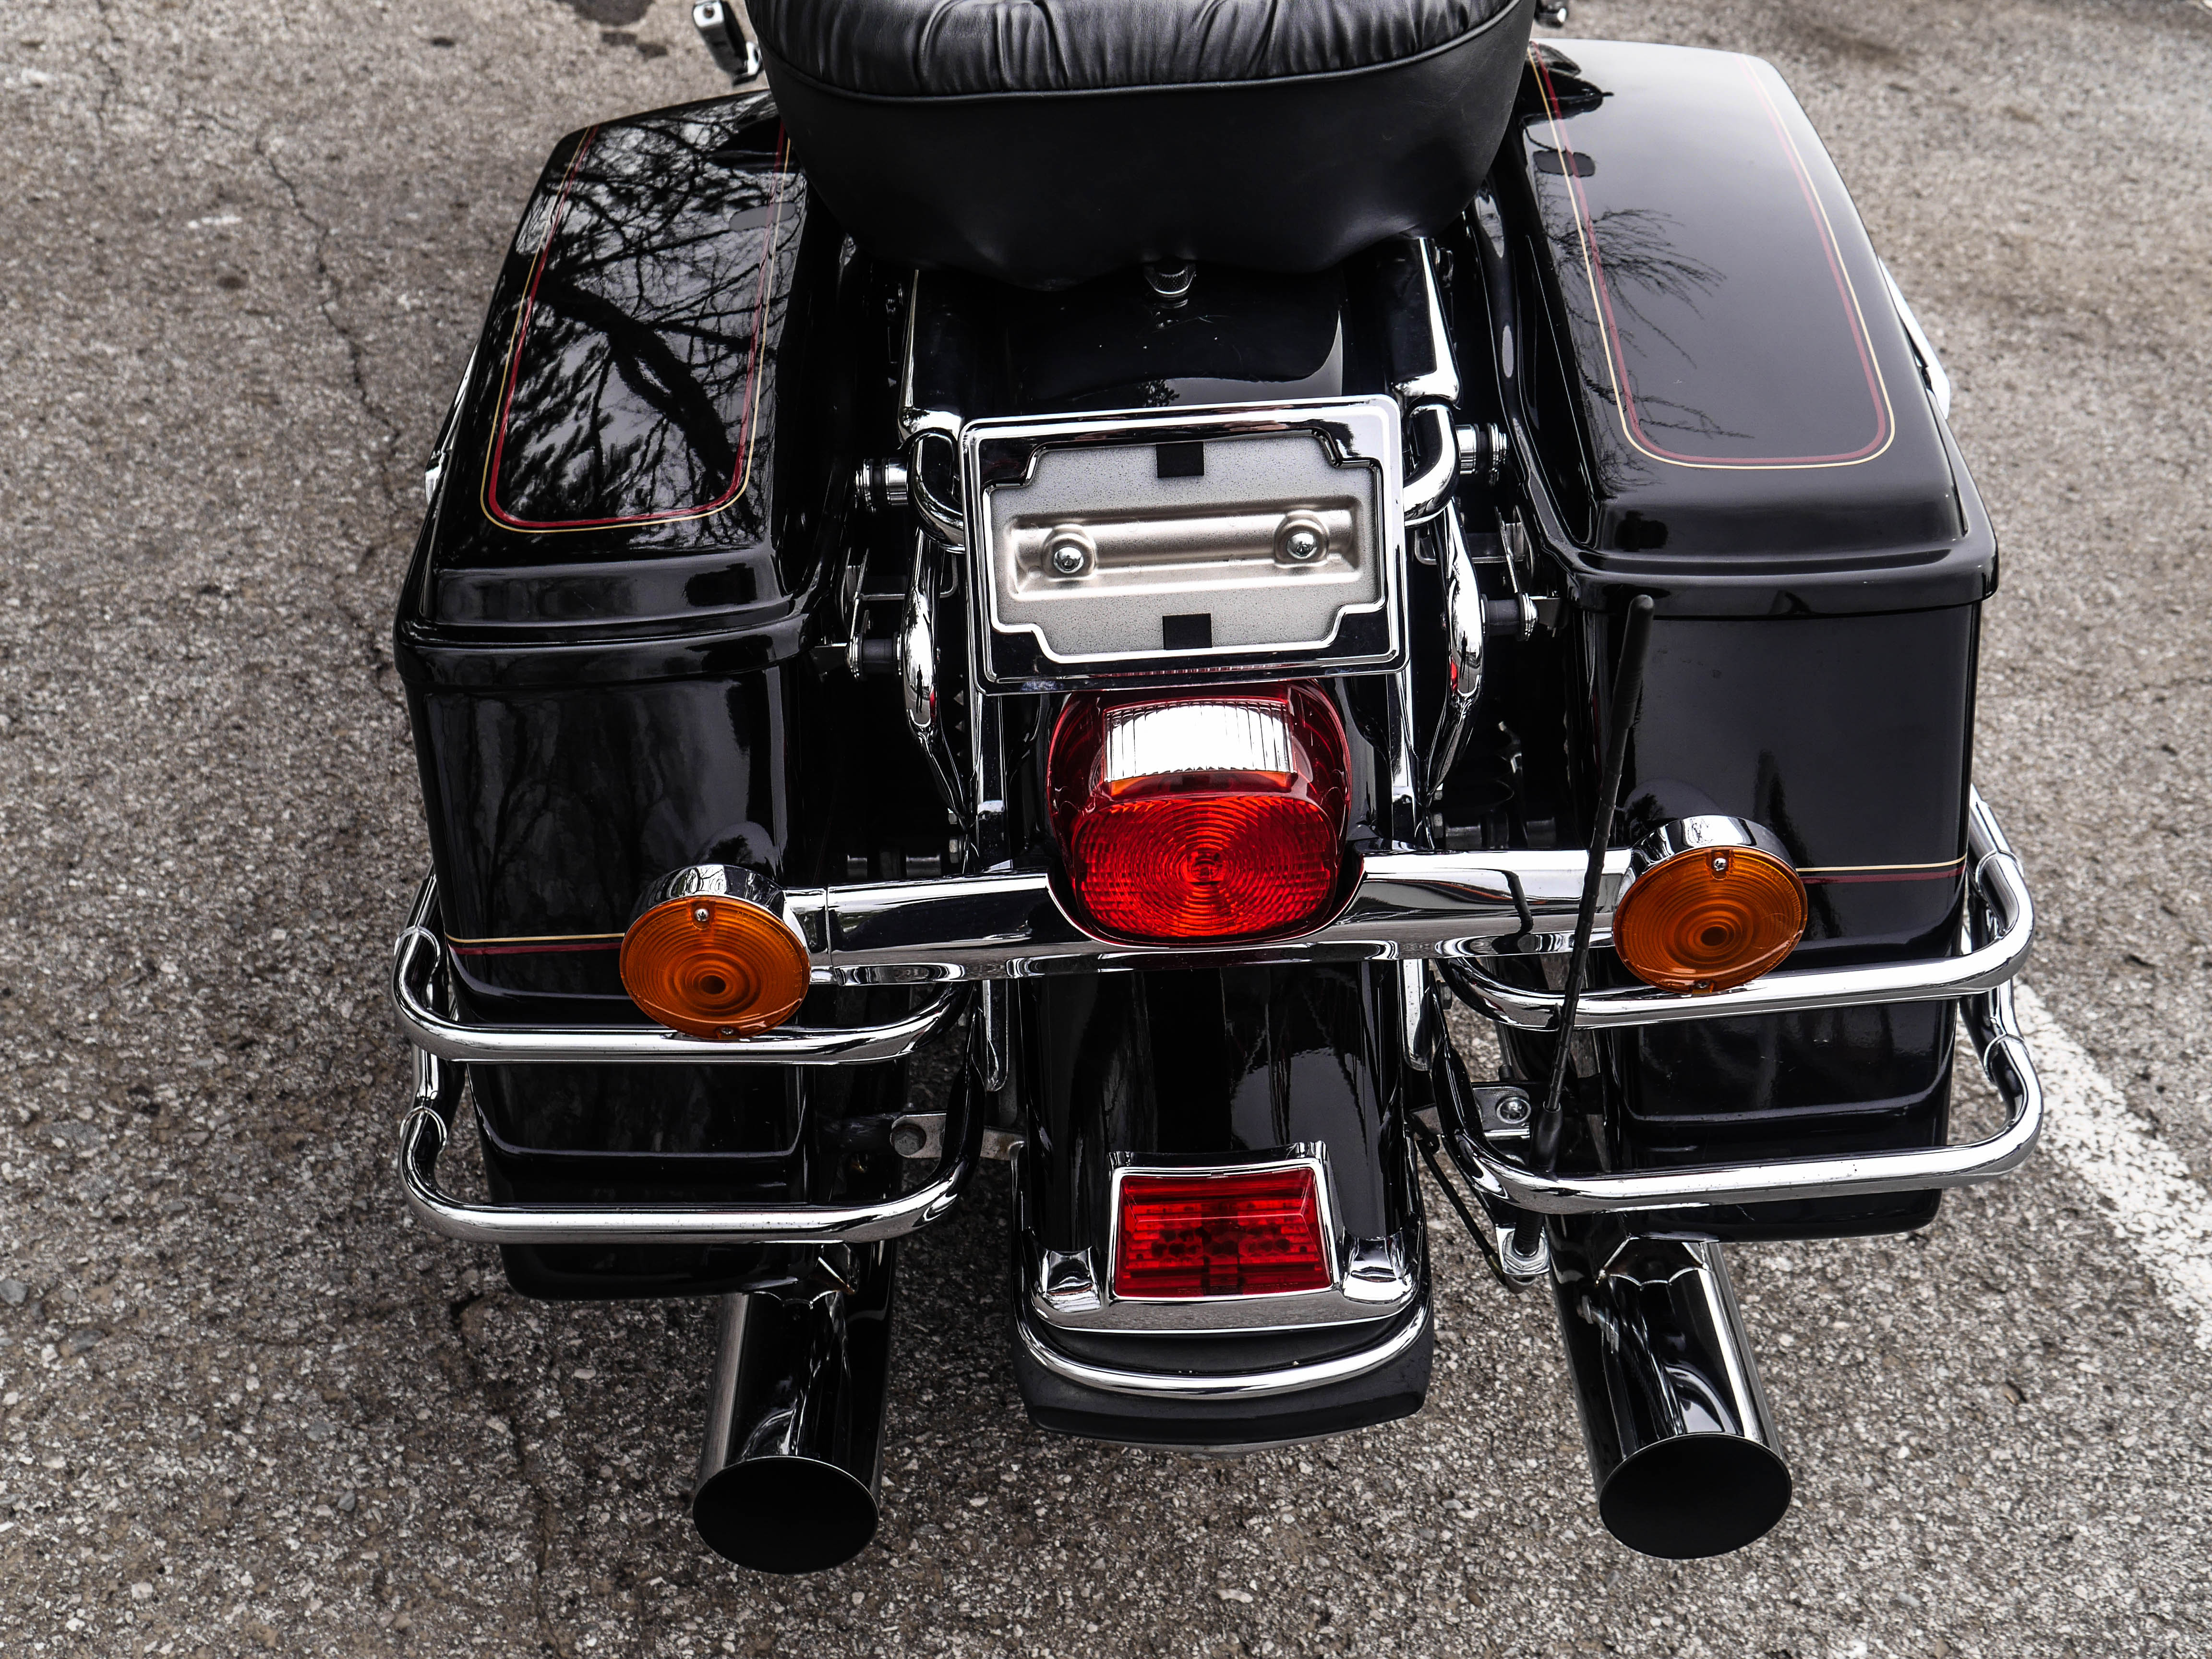 Pre-Owned 2000 Harley-Davidson Electra Glide Ultra Classic